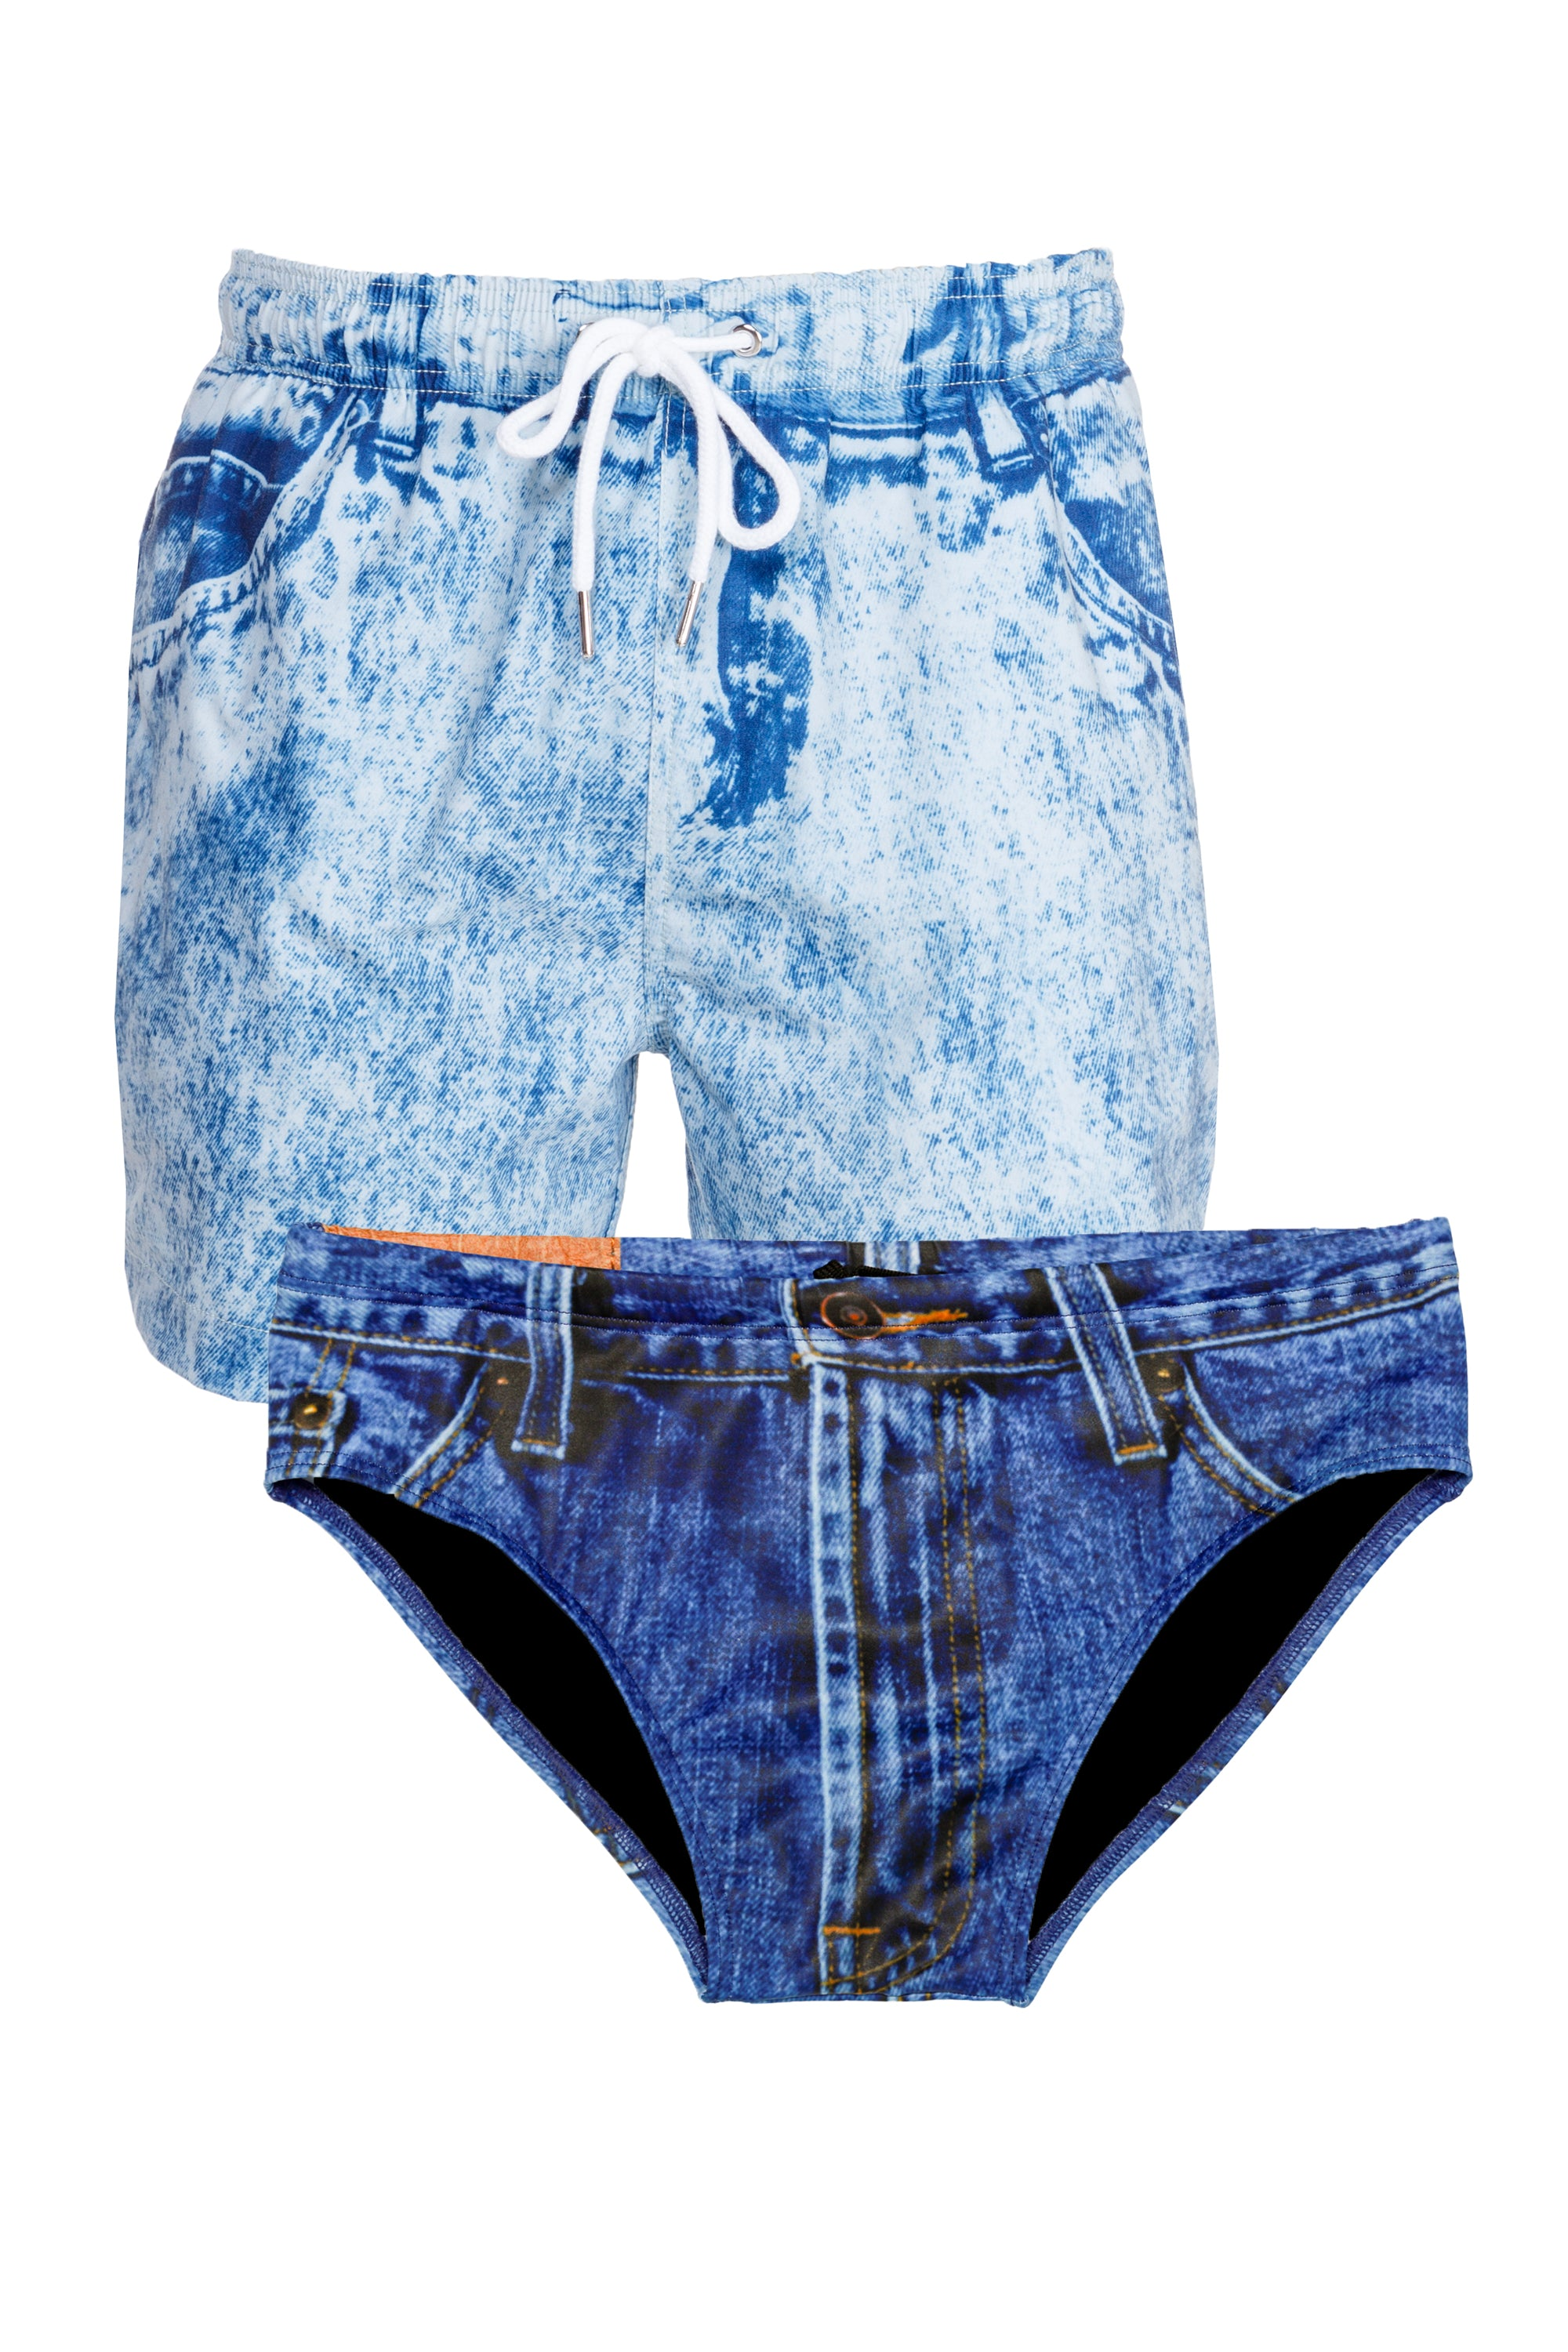 Men S Fake Denim Swimsuit Combo The All Jean Errythang